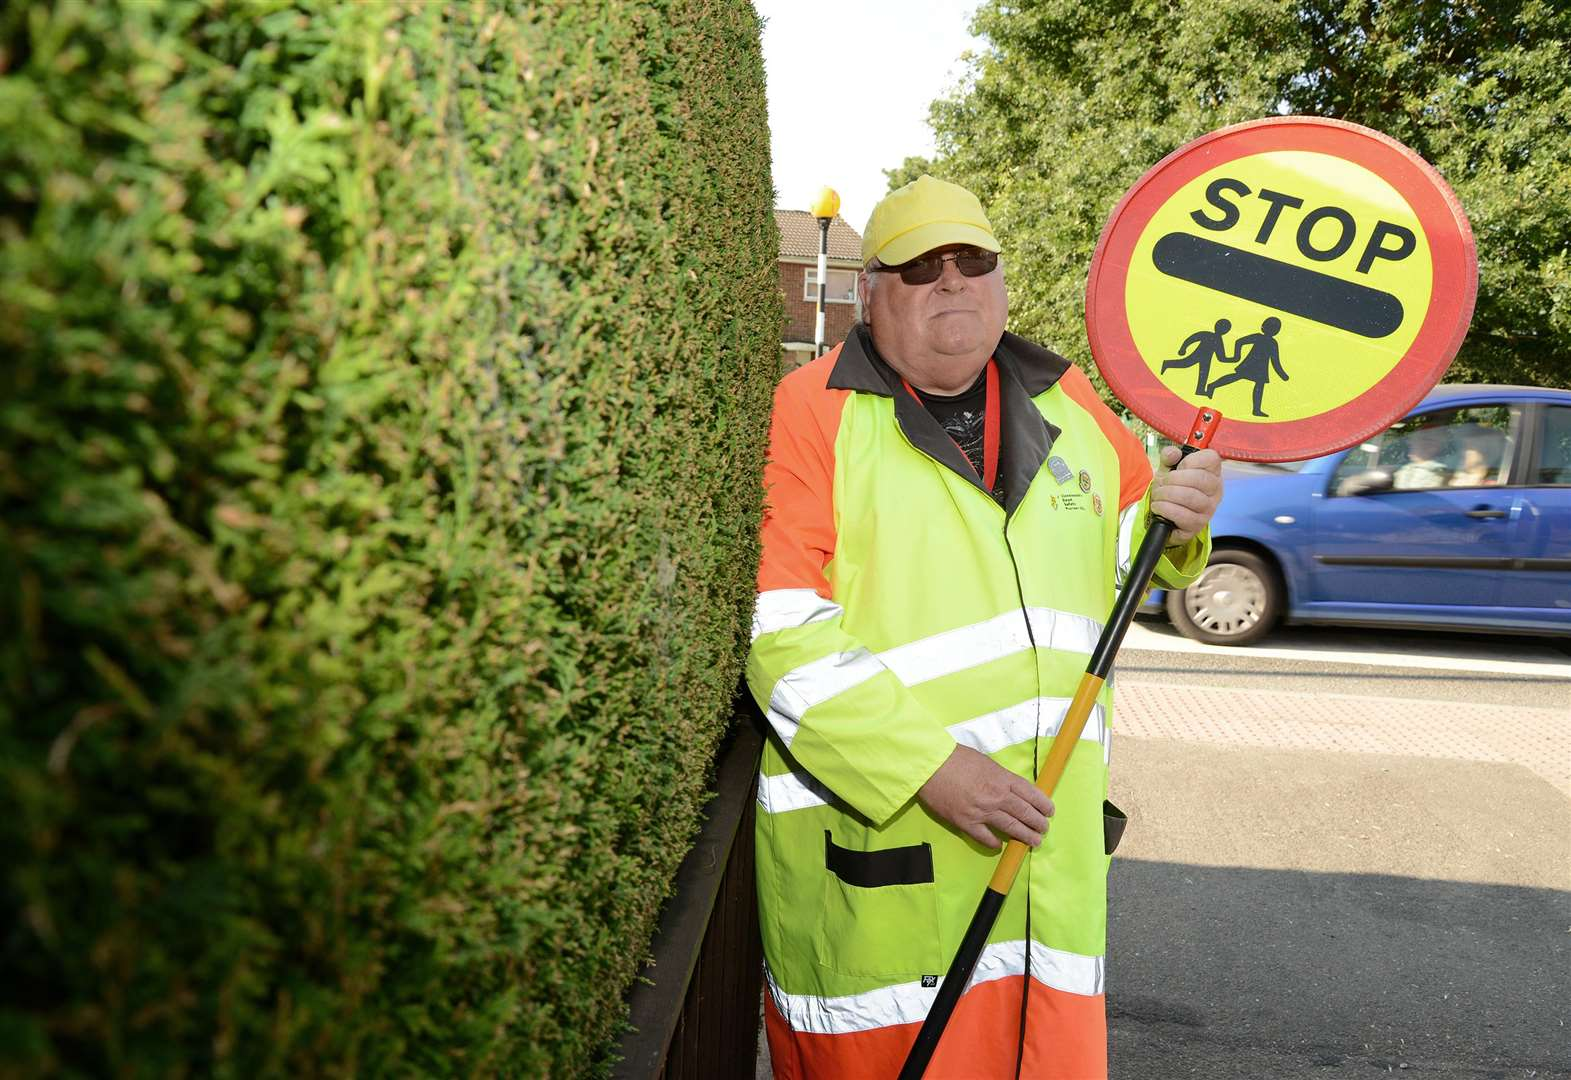 Grantham 'Lollipop man' marks 10 years